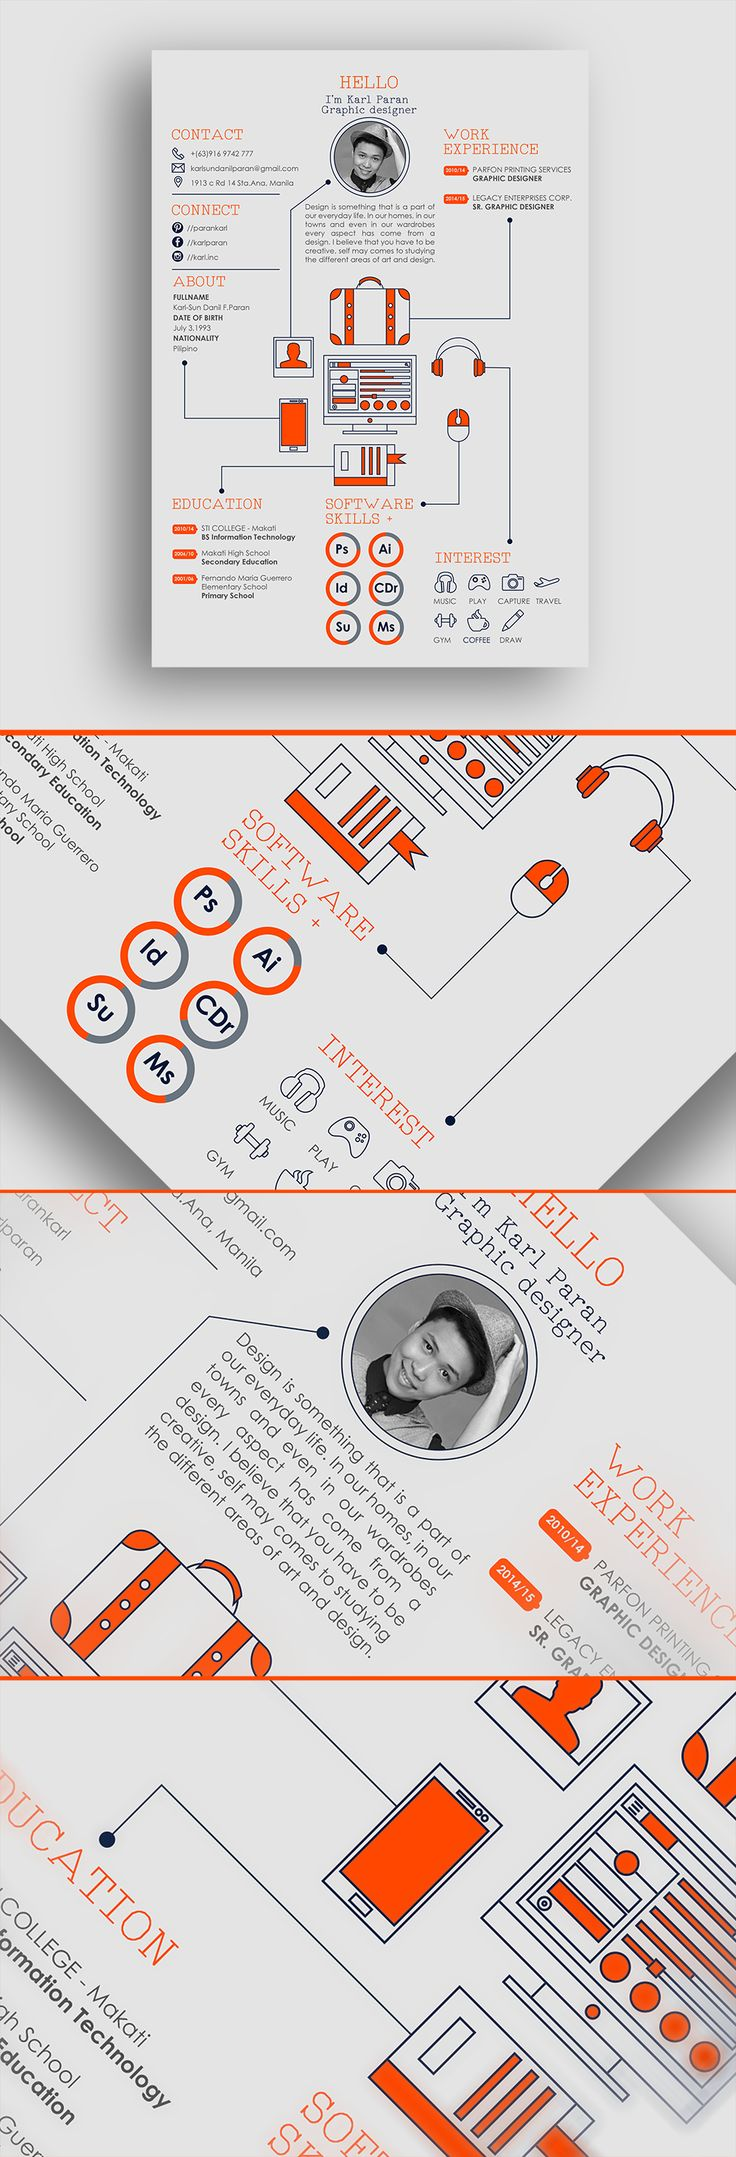 my Curriculum Vitae Design to make it Stand Out